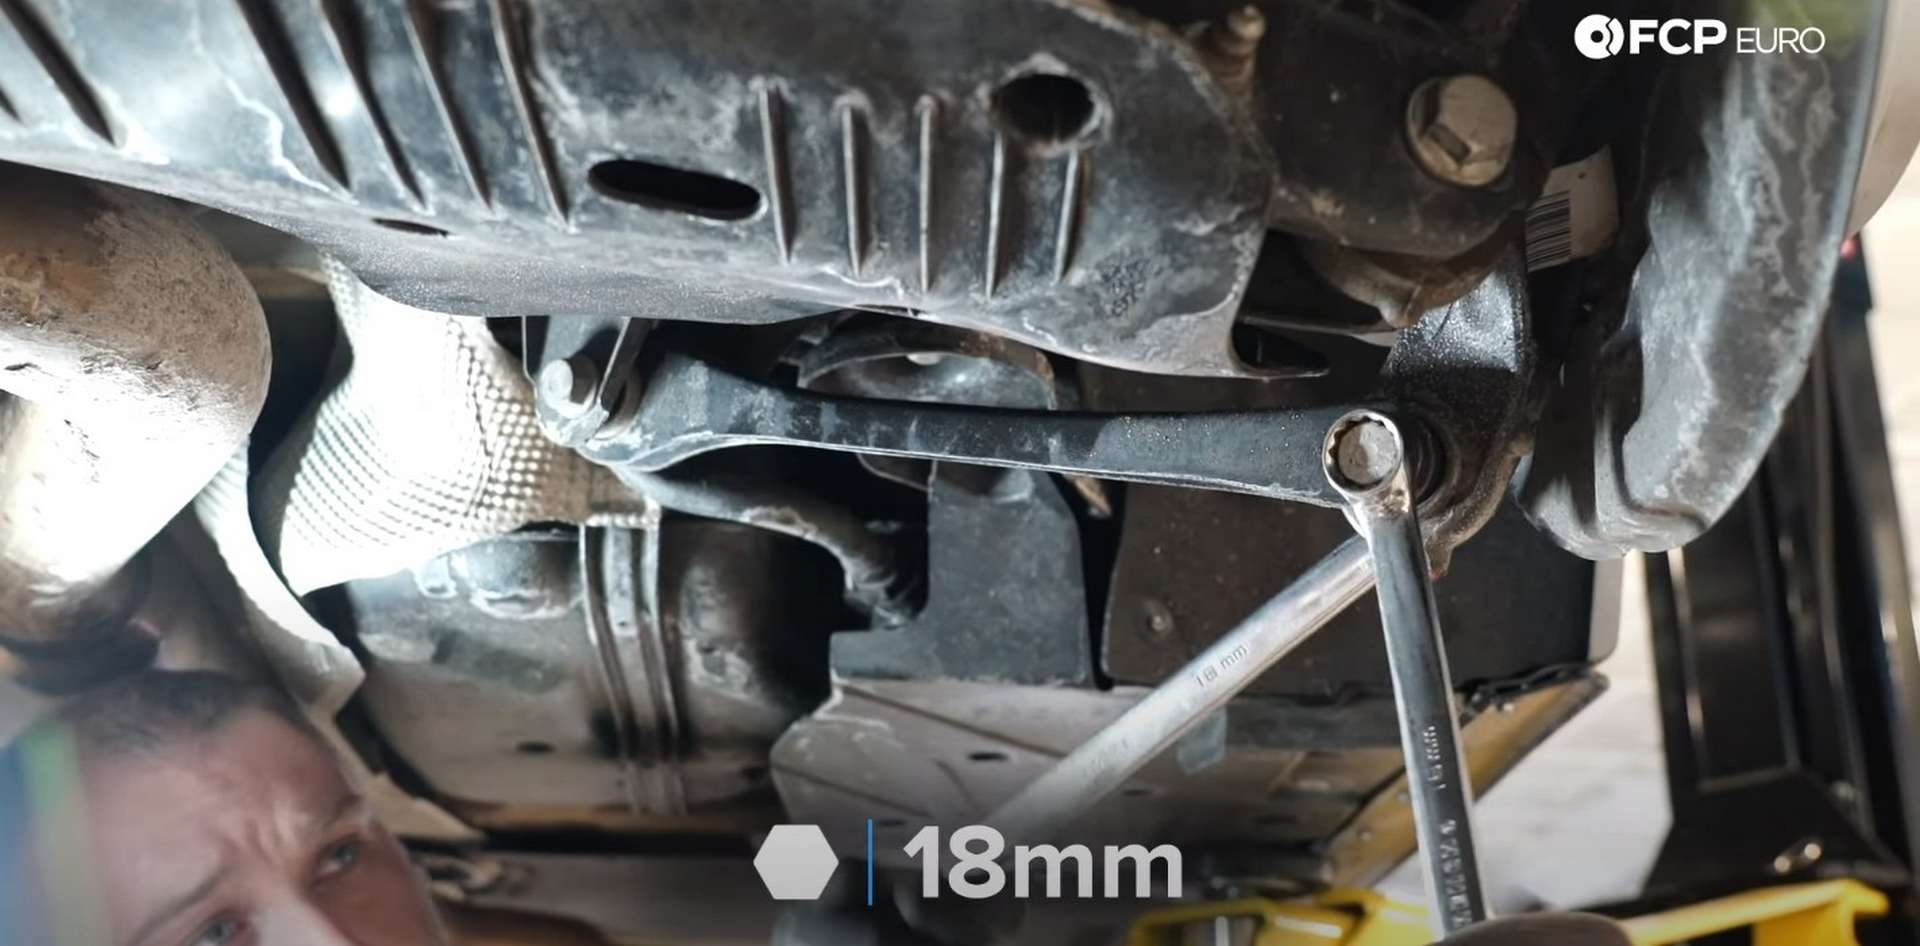 DIY BMW F30 Rear Control Arm Replacement removing the trailing arm bolts